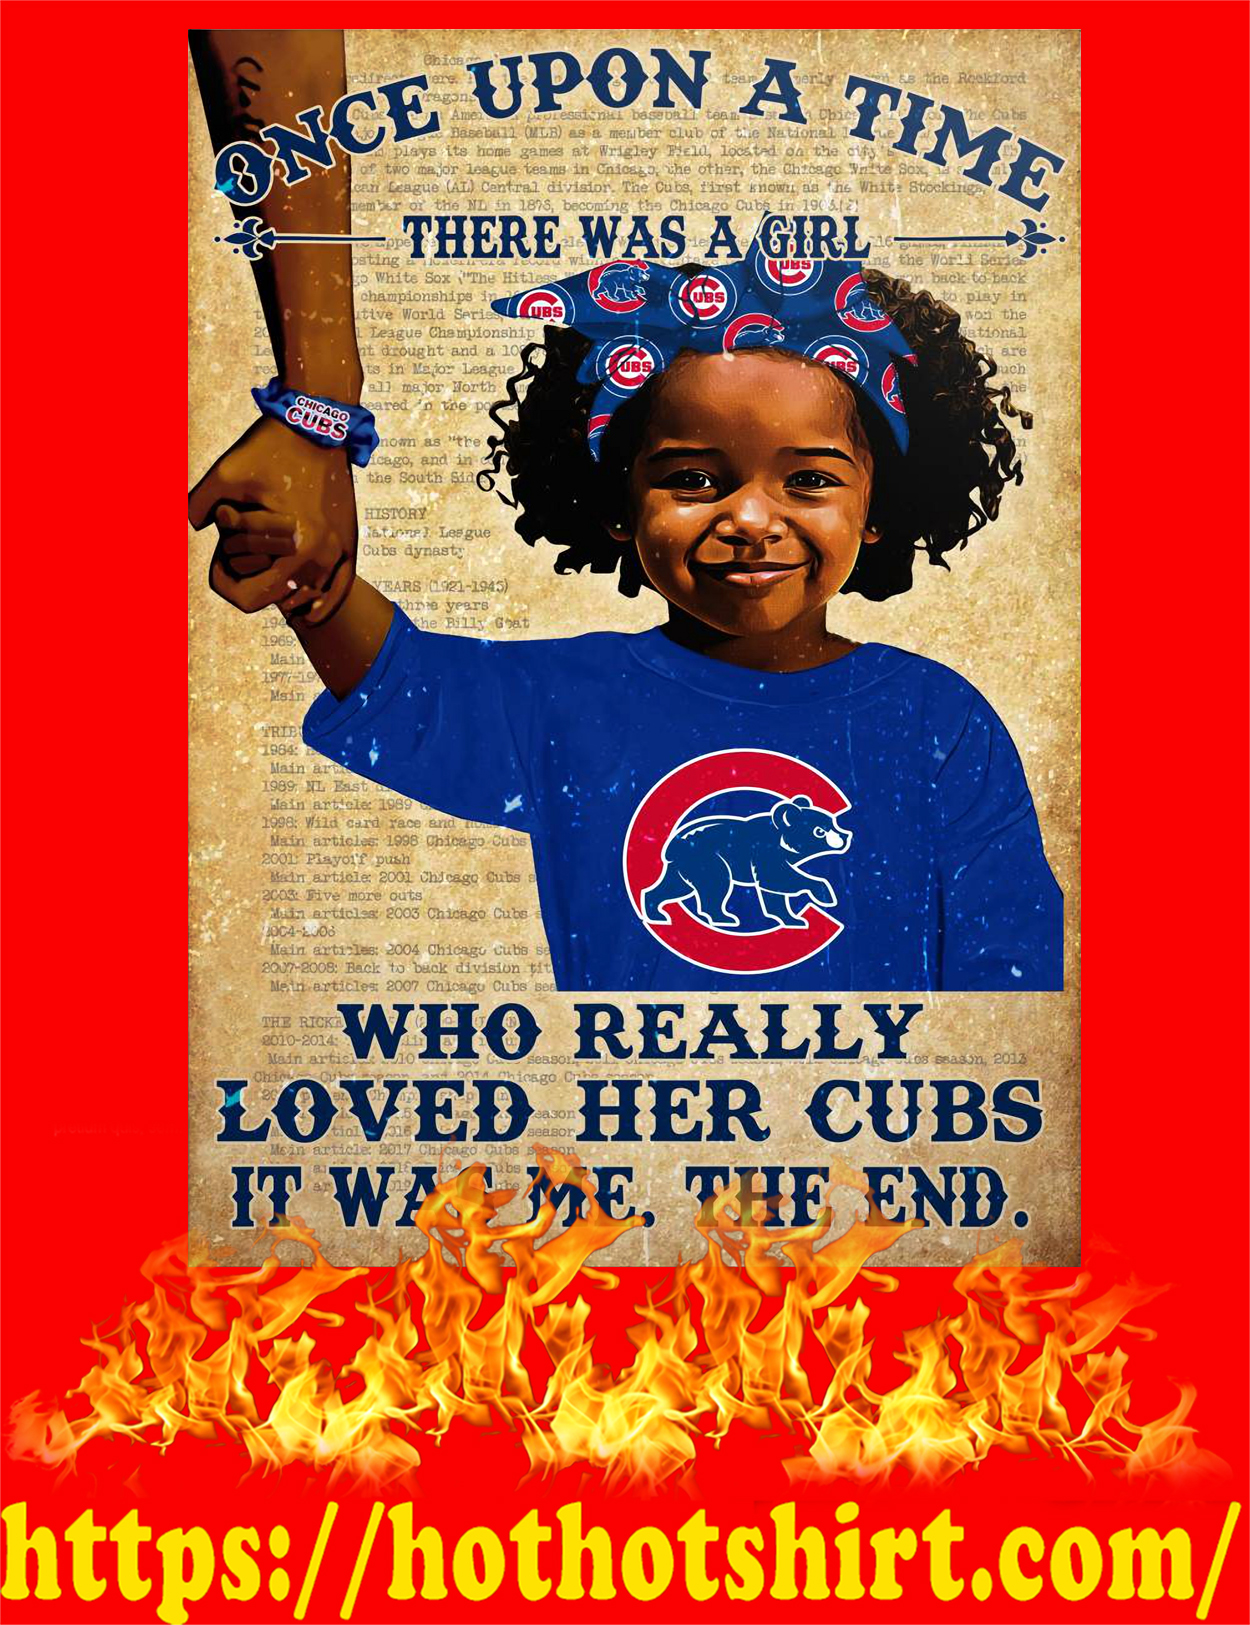 Once upon a time there was a girl who really loved her cubs poster - style 2